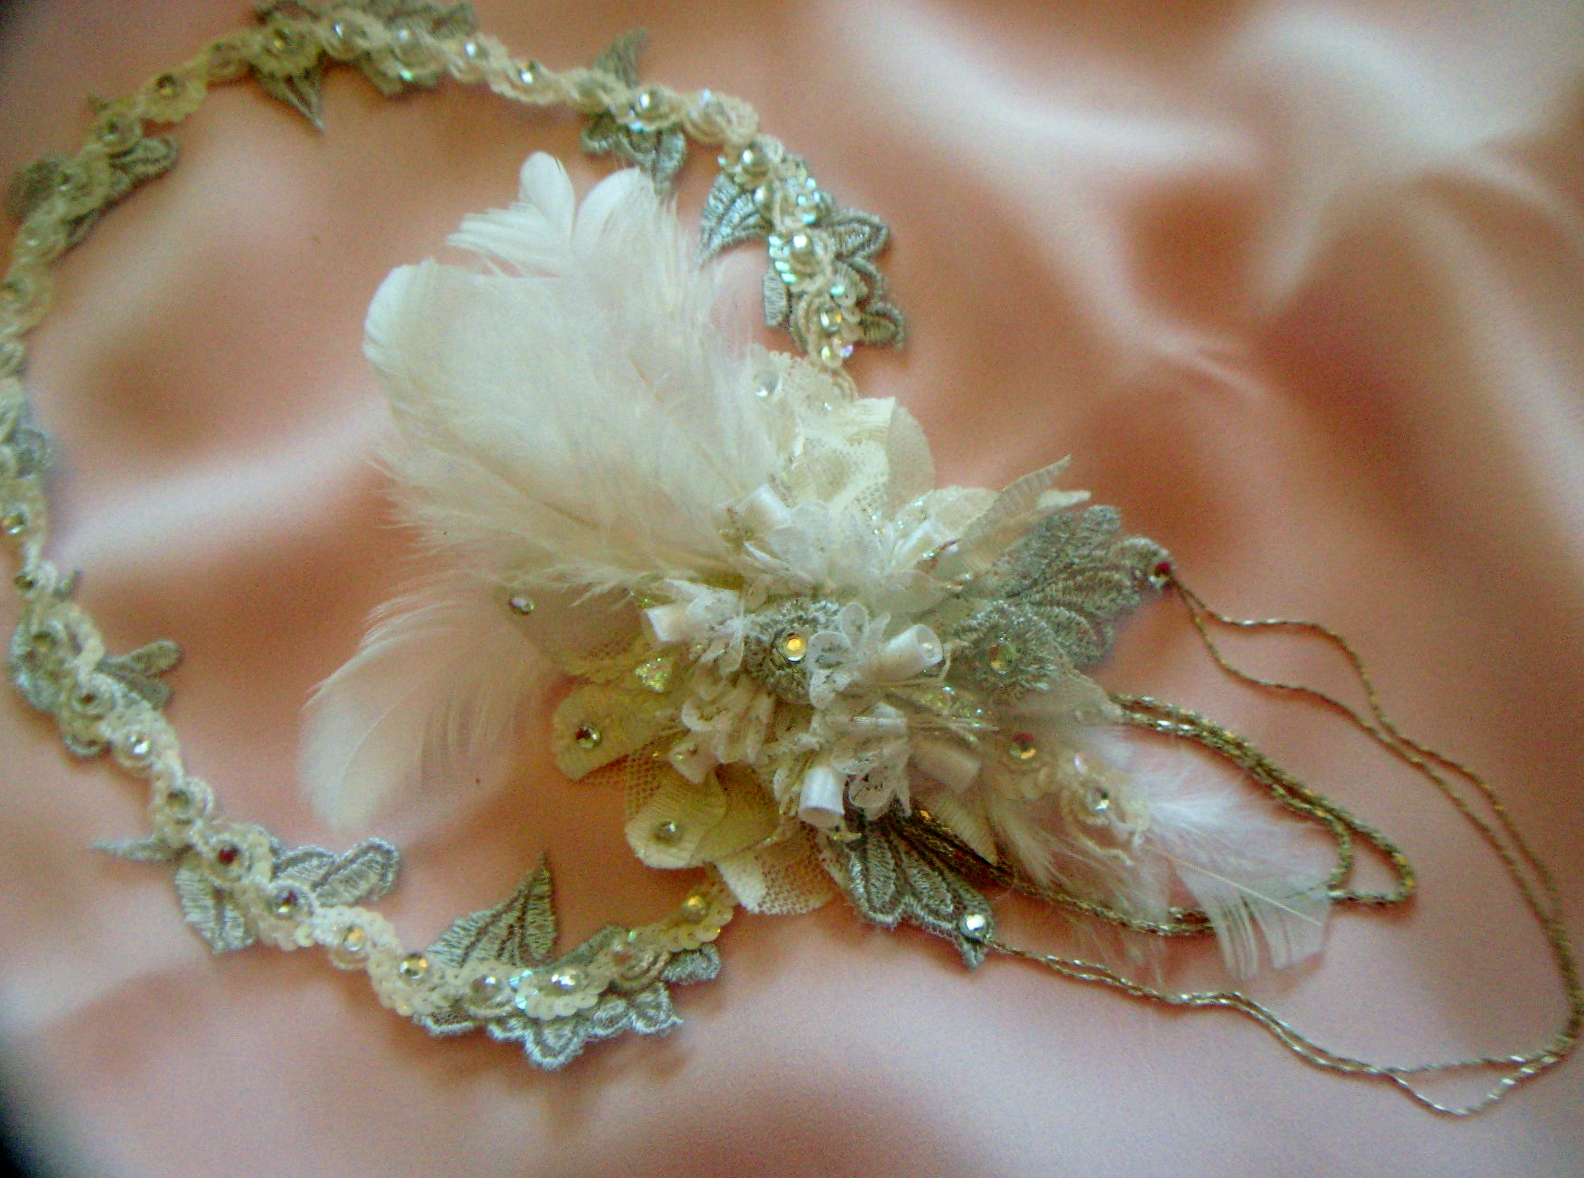 Homage to a 1920's Wedding: Bridal Hair Jewelry